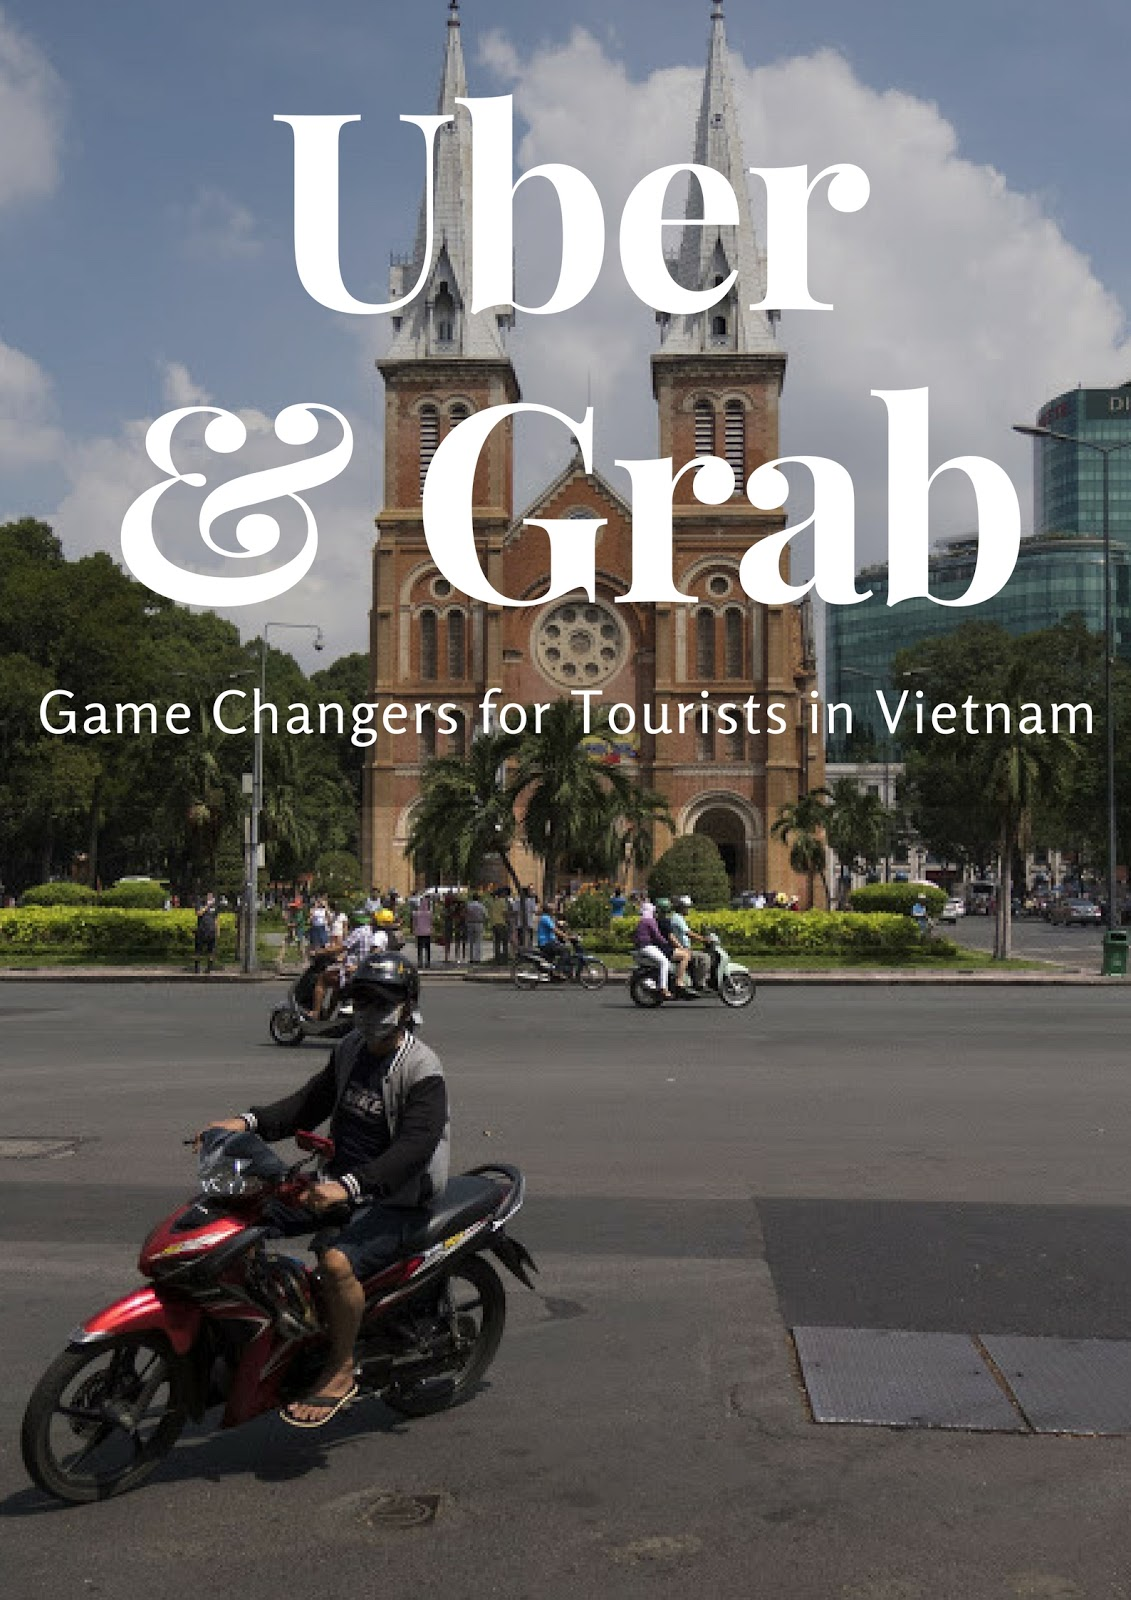 Using Grab in Vietnam: Why Ride Hailing Services are Game Changers